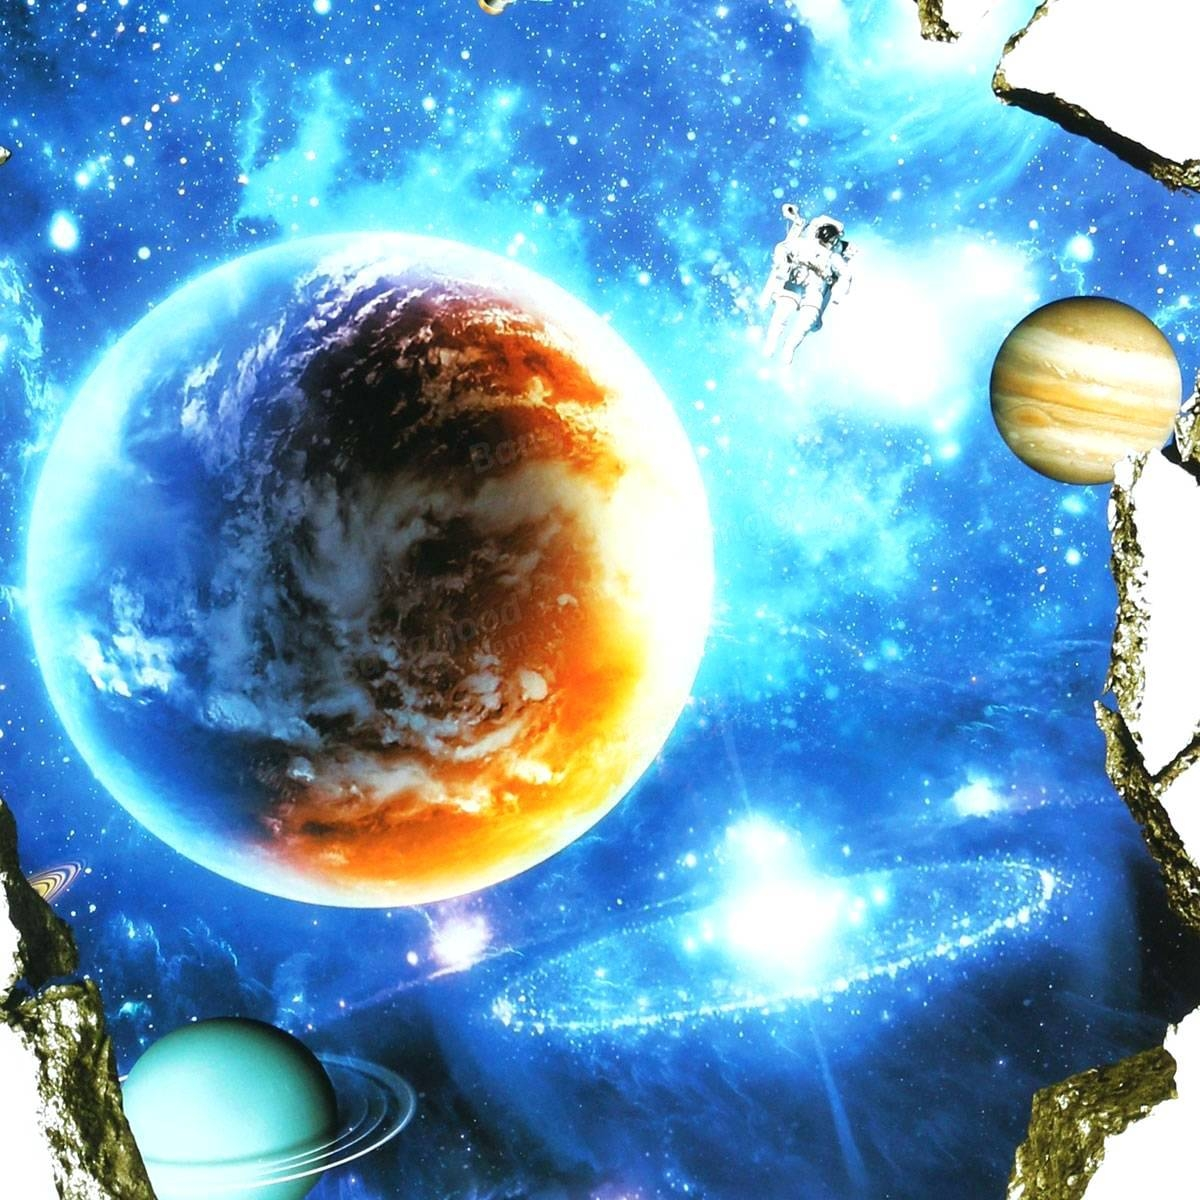 Space Decals For Walls Outer Space Wall Stickers Home Decor Mural Within 2017 Outer Space Wall Art (View 22 of 25)